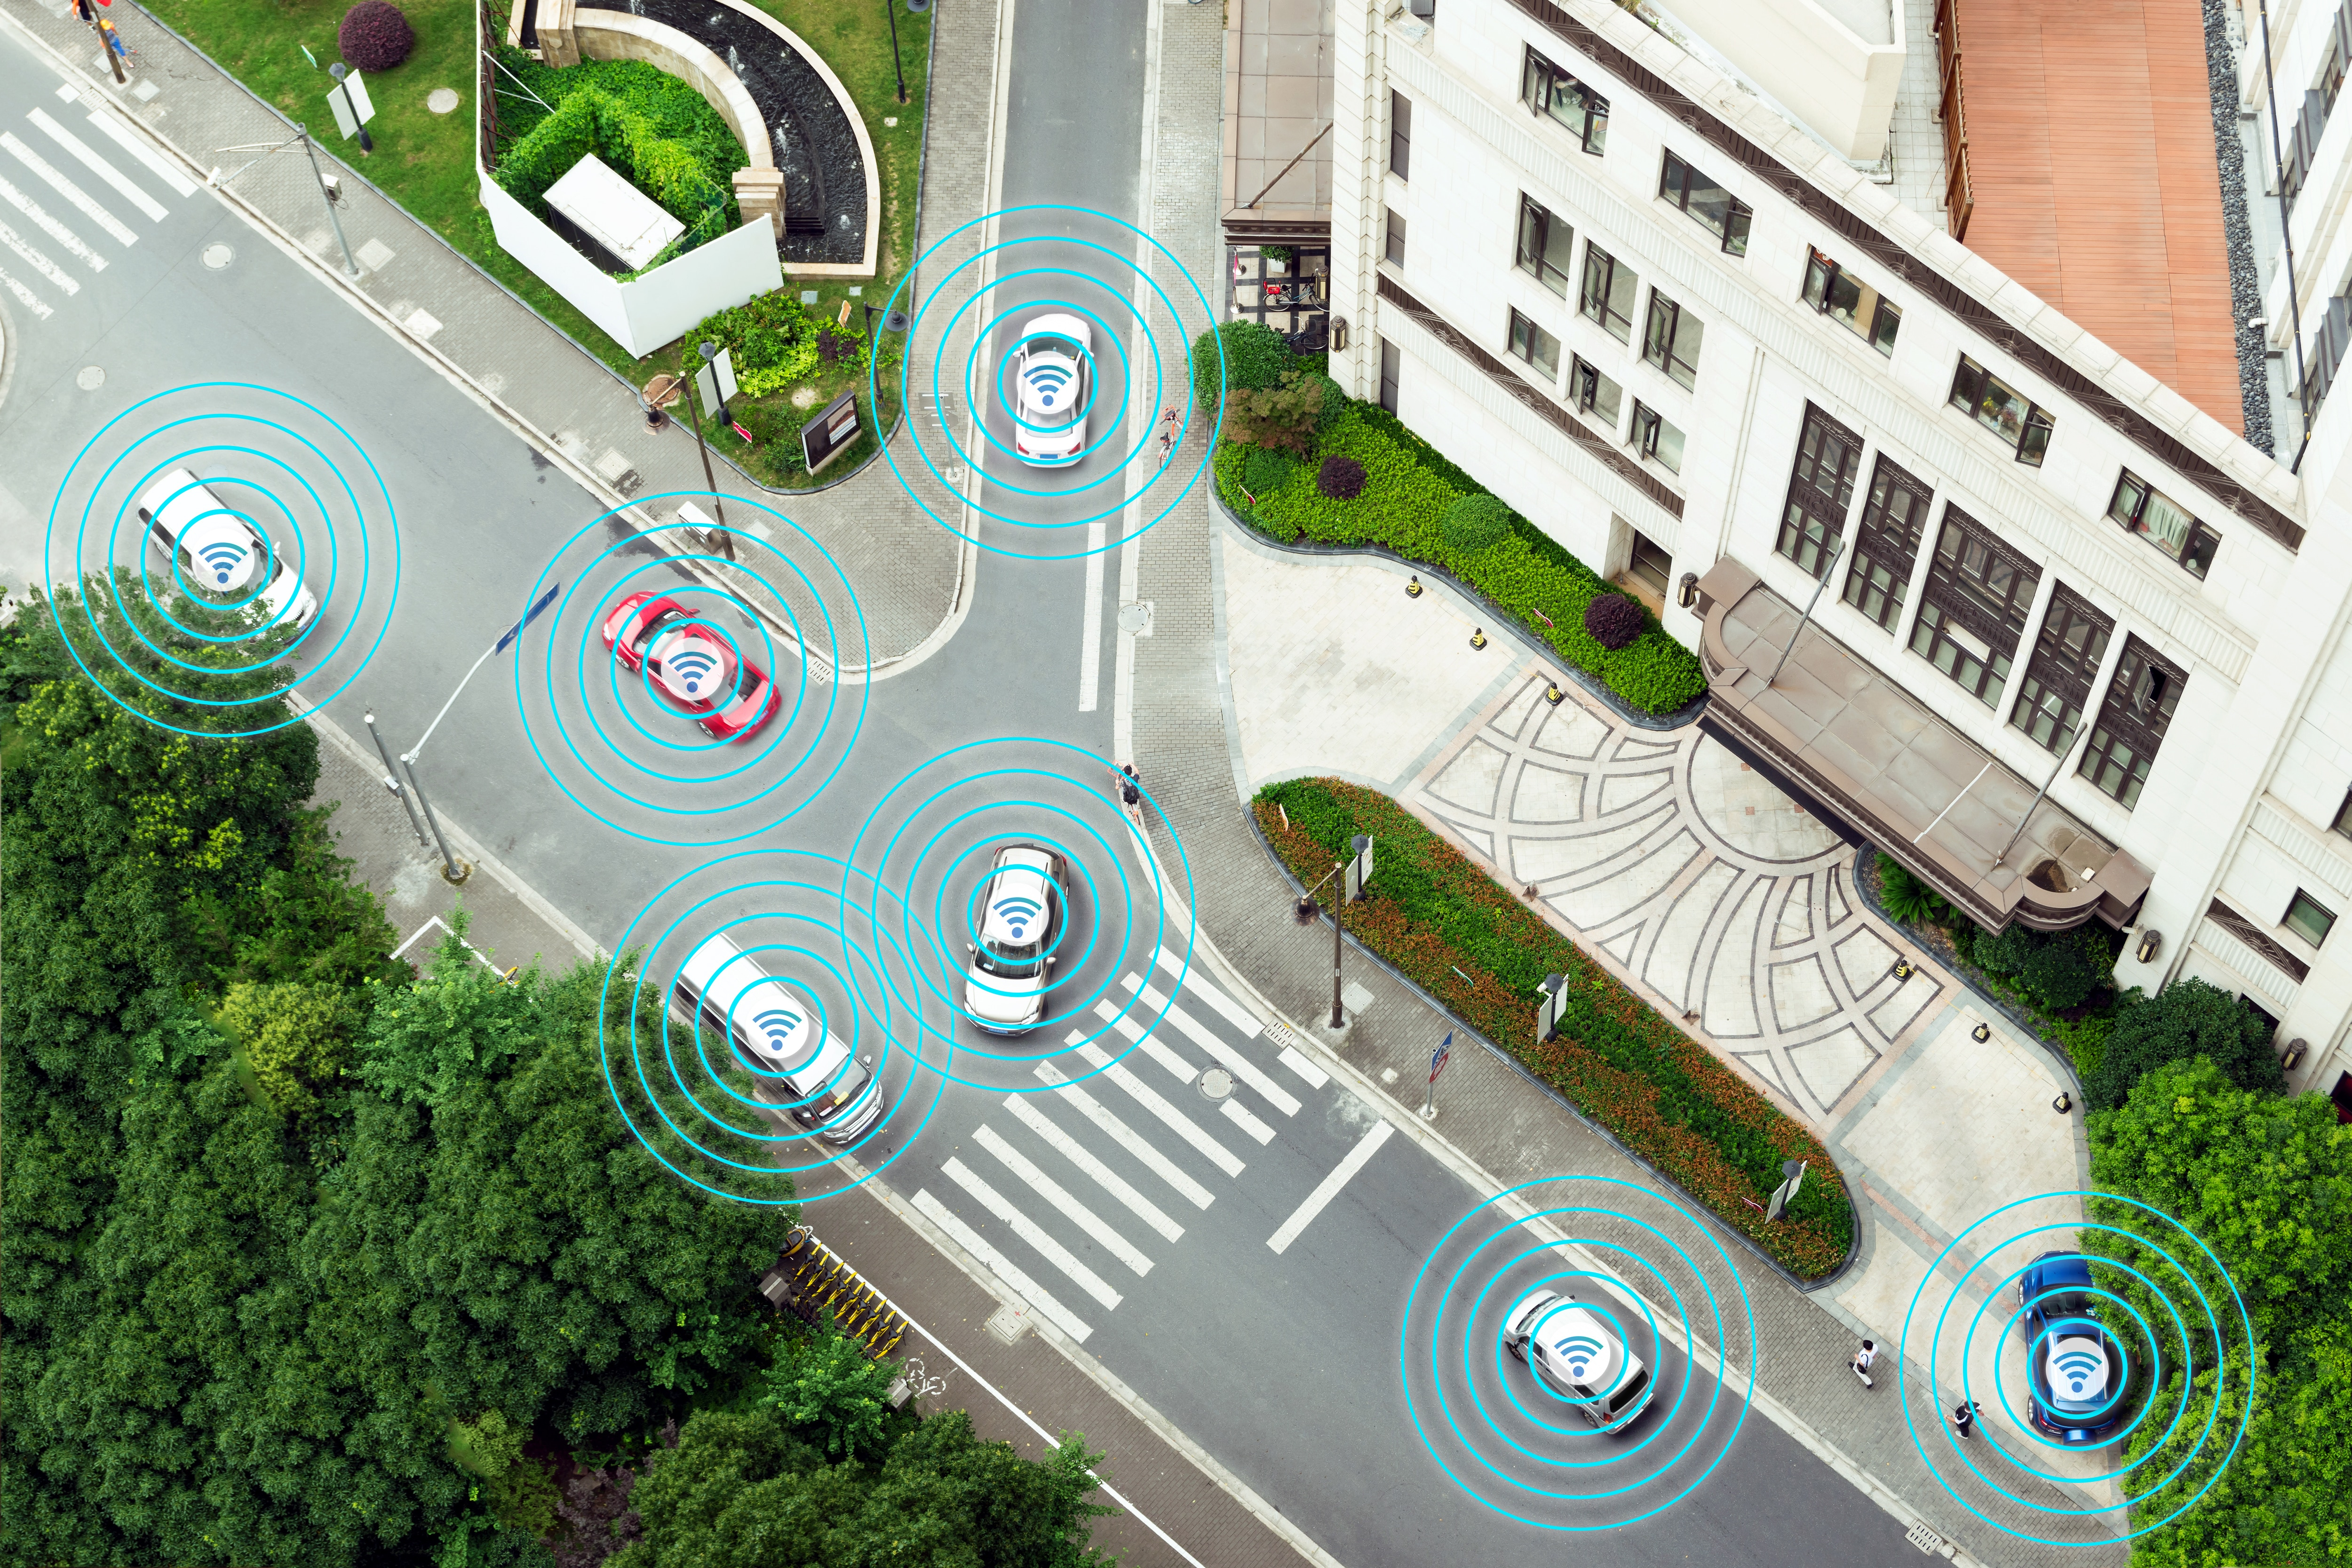 Digital transformation Trends in automotive industry. Smart car , Autonomous self-driving mode vehicle on metro city road iot concept with graphic sensor radar signal system , internet sensor.